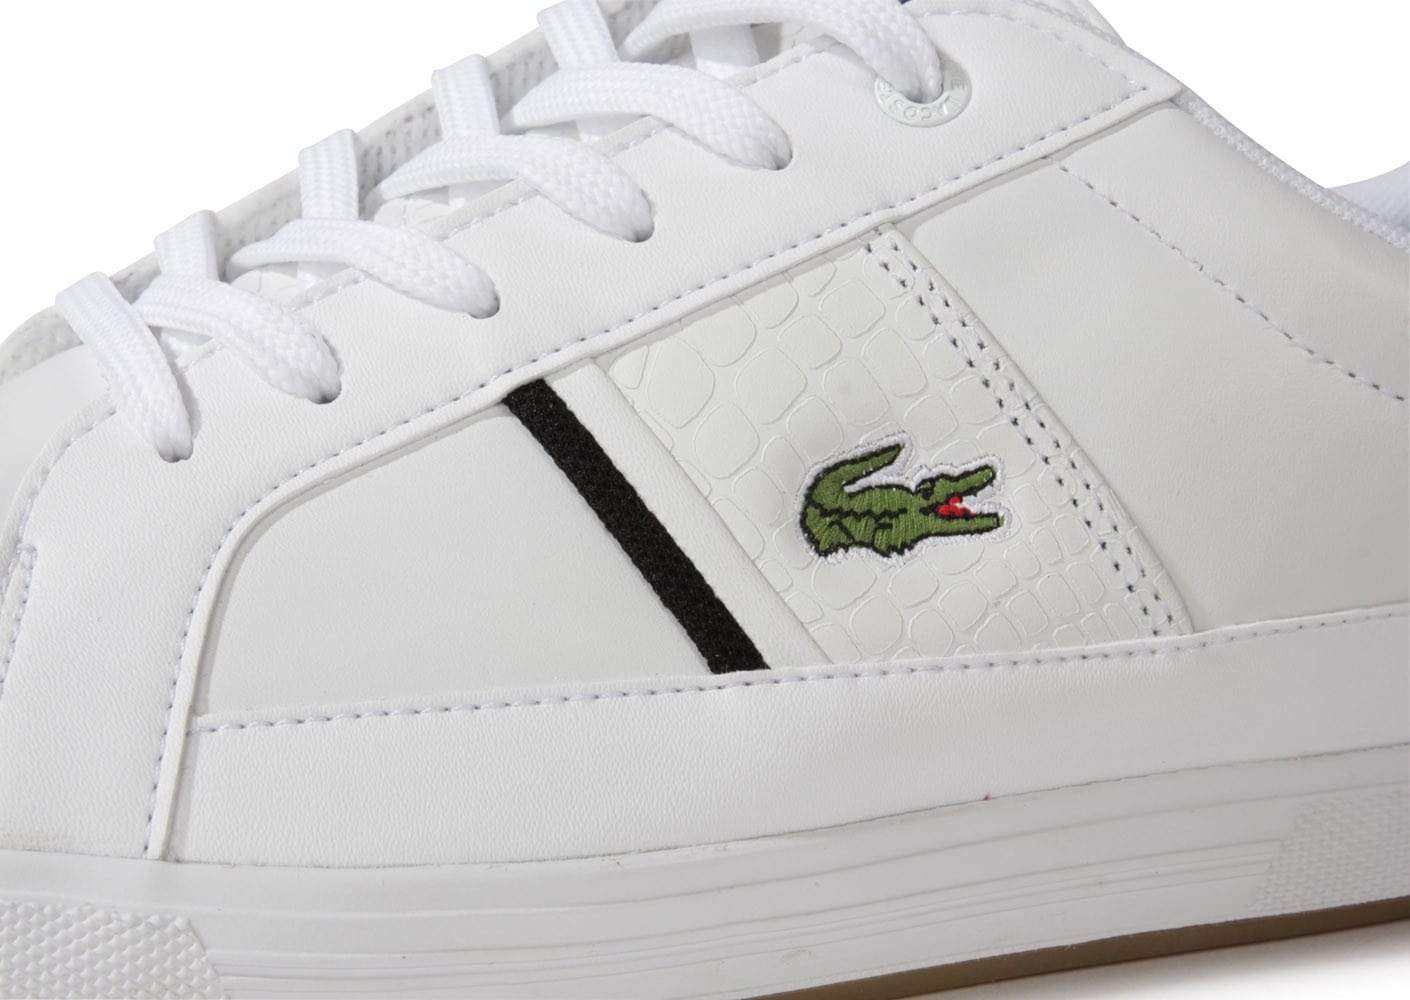 Chausport Chaussures Pqzts6wz Europa Lacoste Cuir Baskets Blanche Homme MpSGLqzjUV